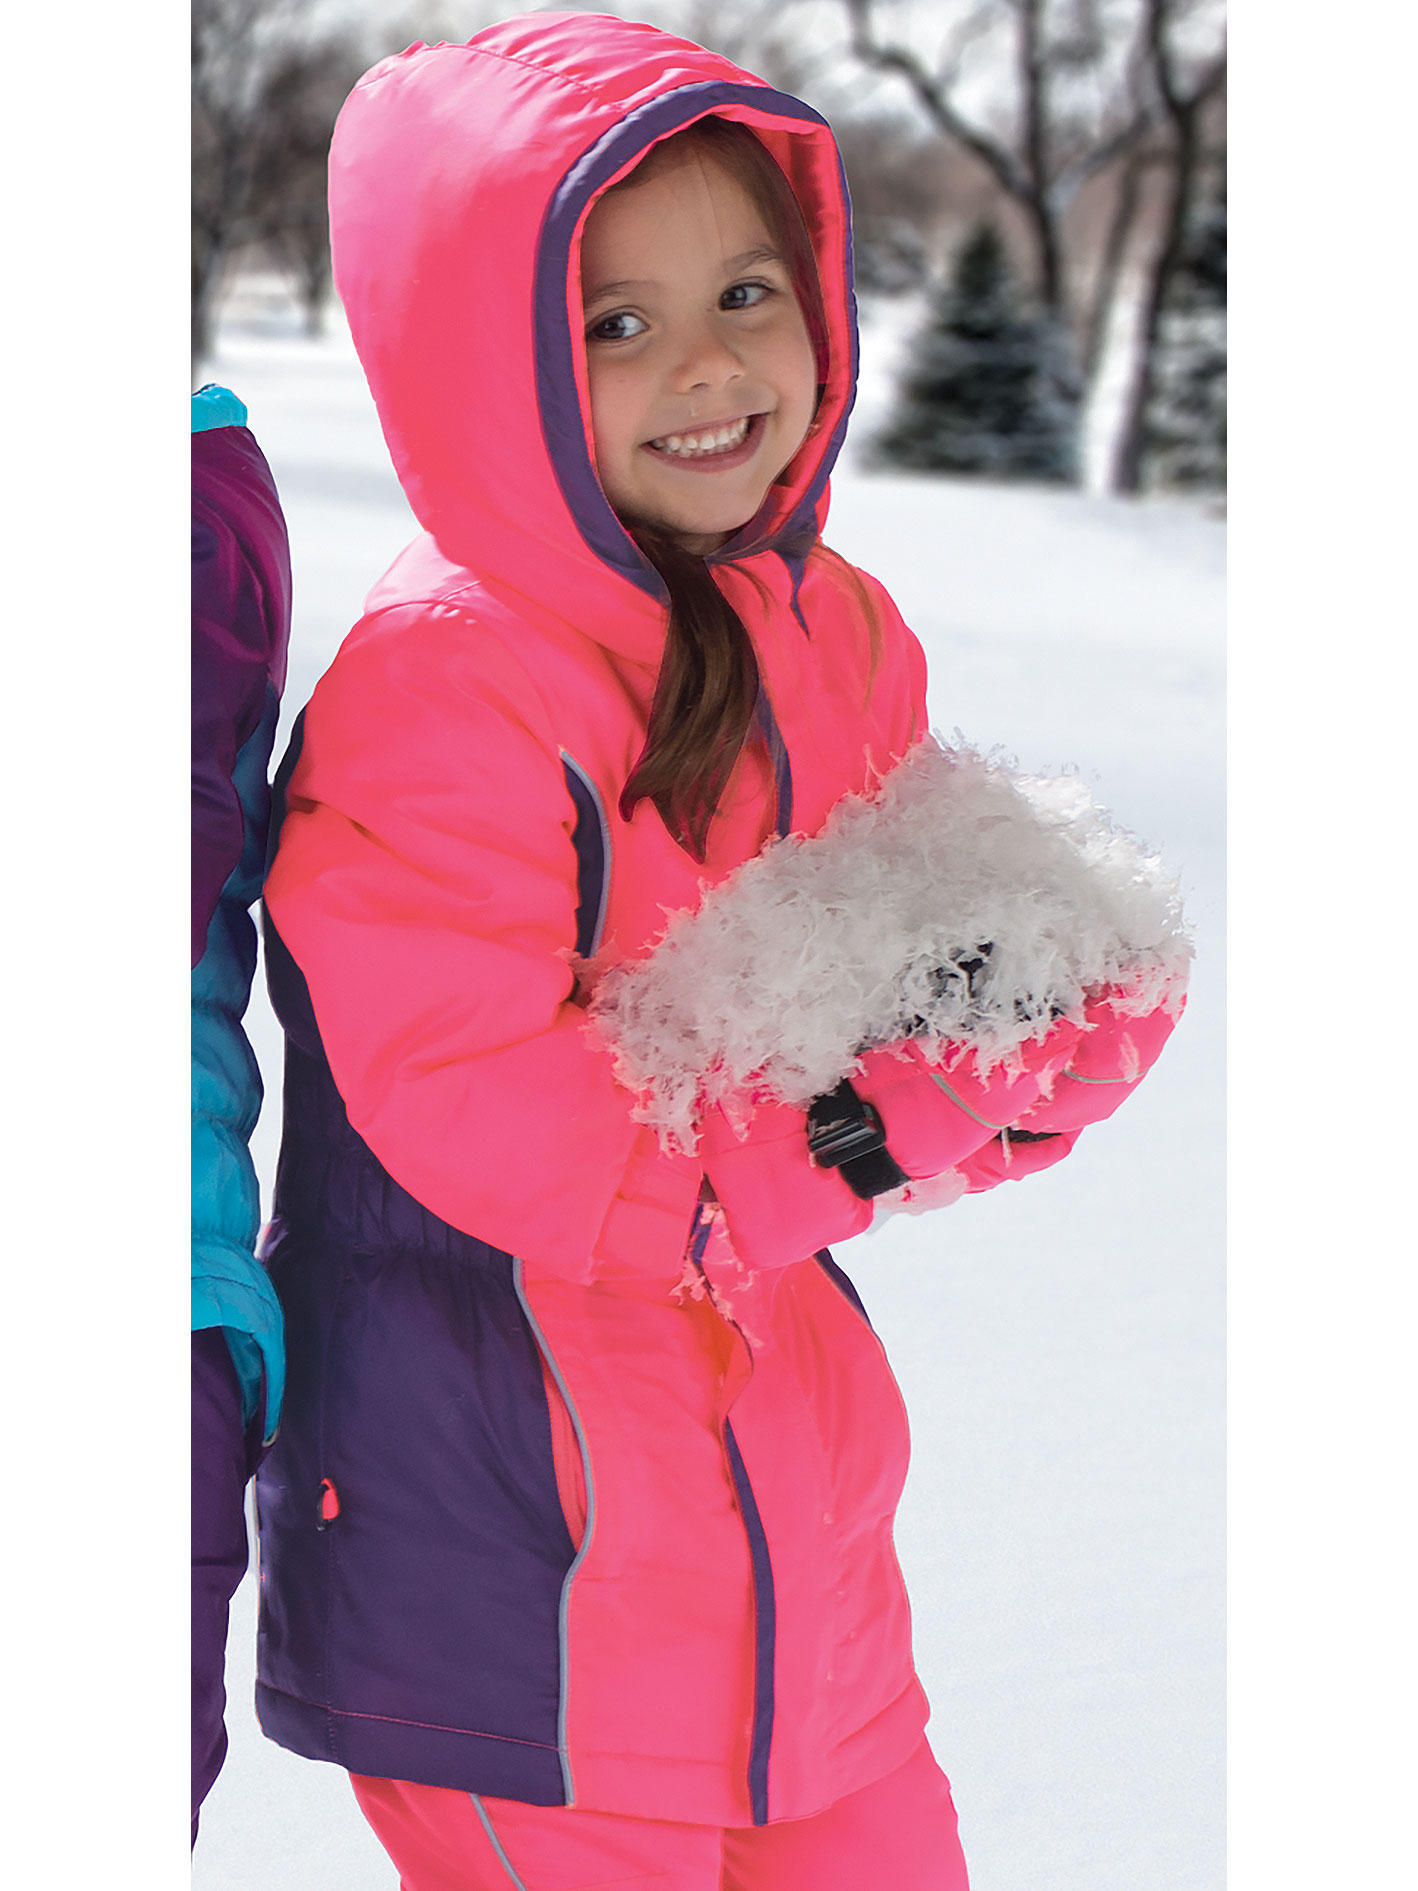 a913f697 Cozy Cub - Cozy Cub Toddler Girl Winter Parka - Hot Pink and Purple with  Grow-With-Me Sleeves - Waterproof Winter Jacket - Walmart.com